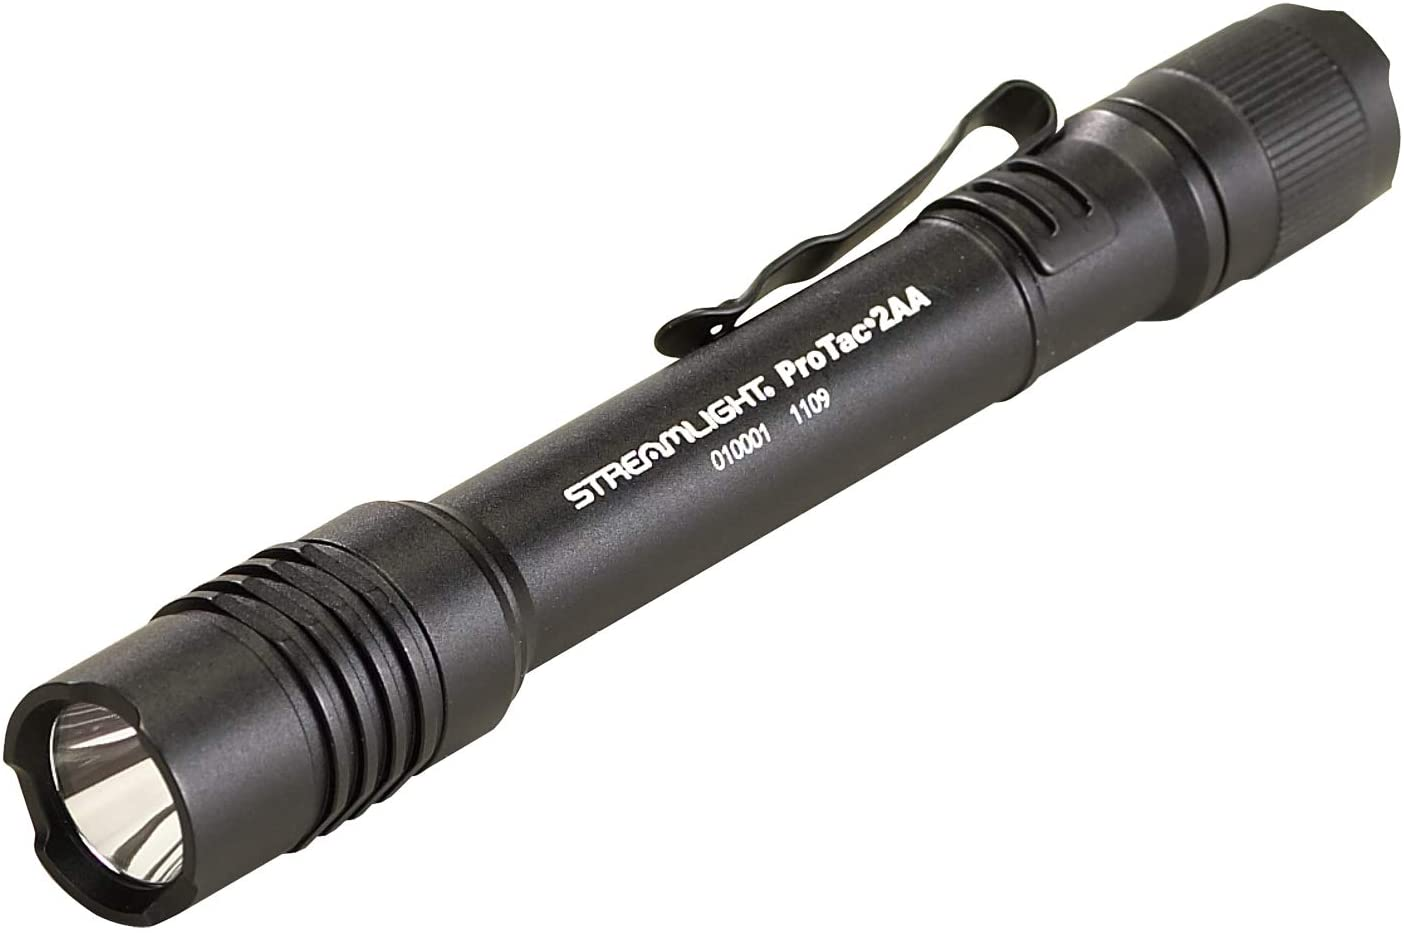 This is an image of StreamLight Protac 2AA Flashlight in black color.